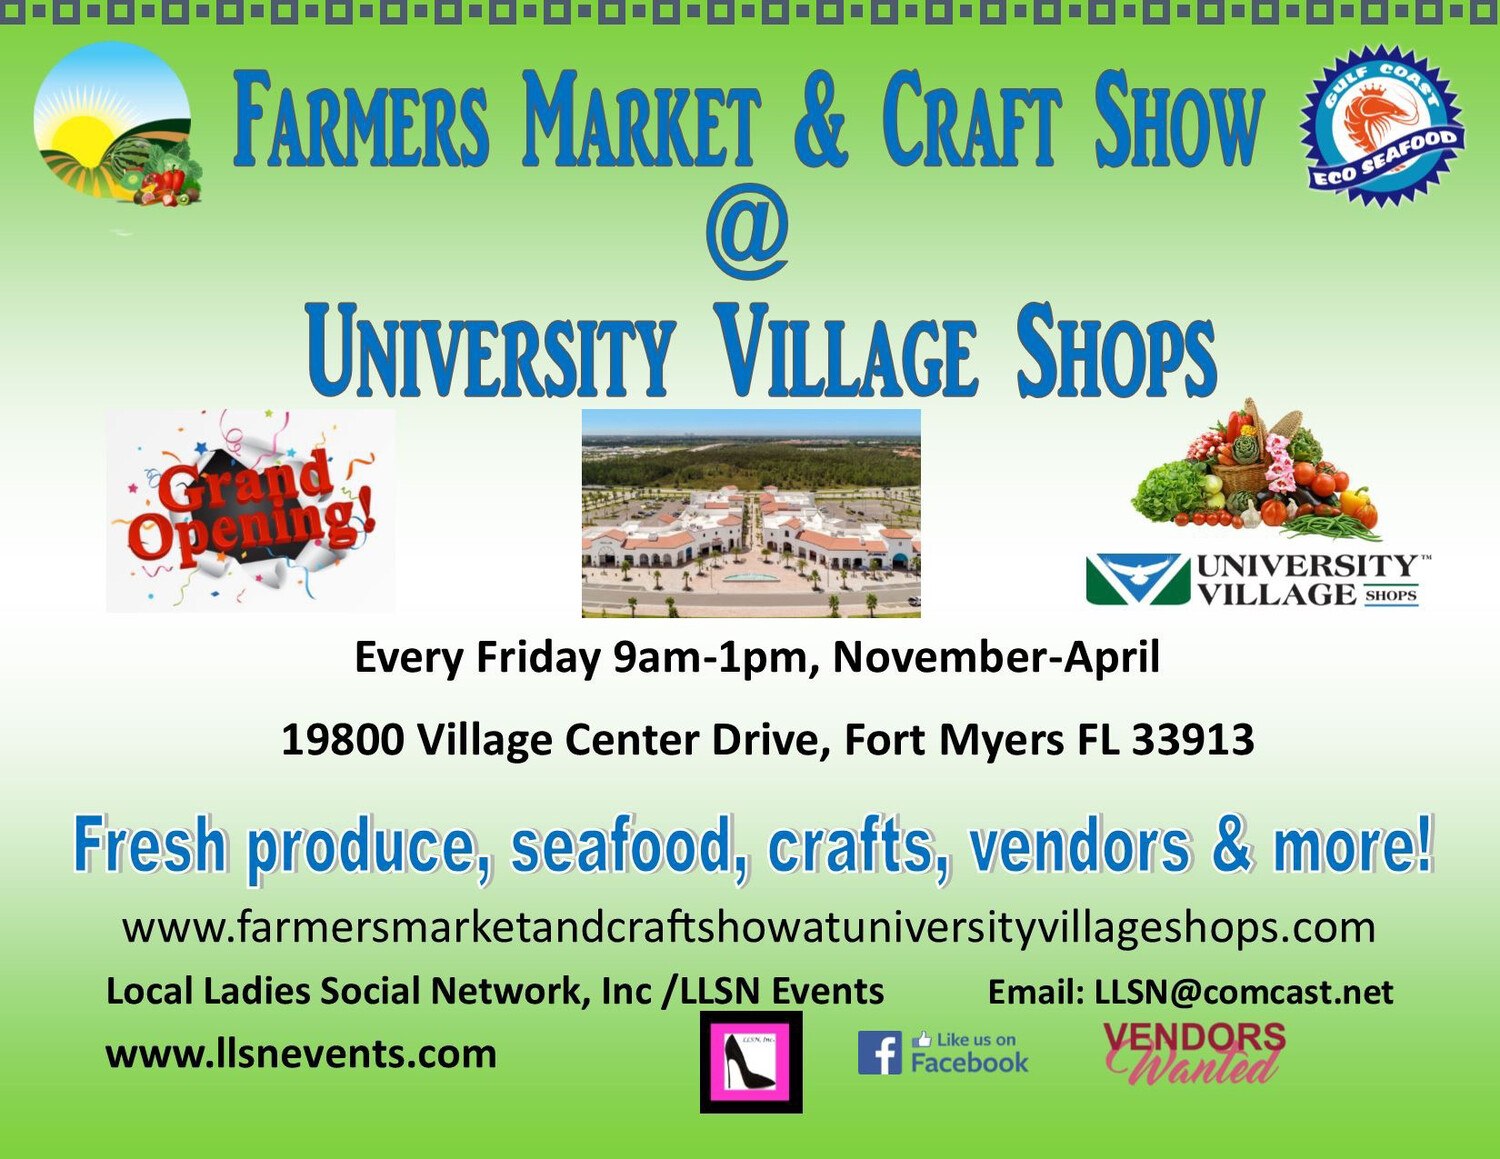 This payment option is for Crafts only for this market! All other vendors must Email LLSN@comcast.net for this event to check availability. Jewelry is full.